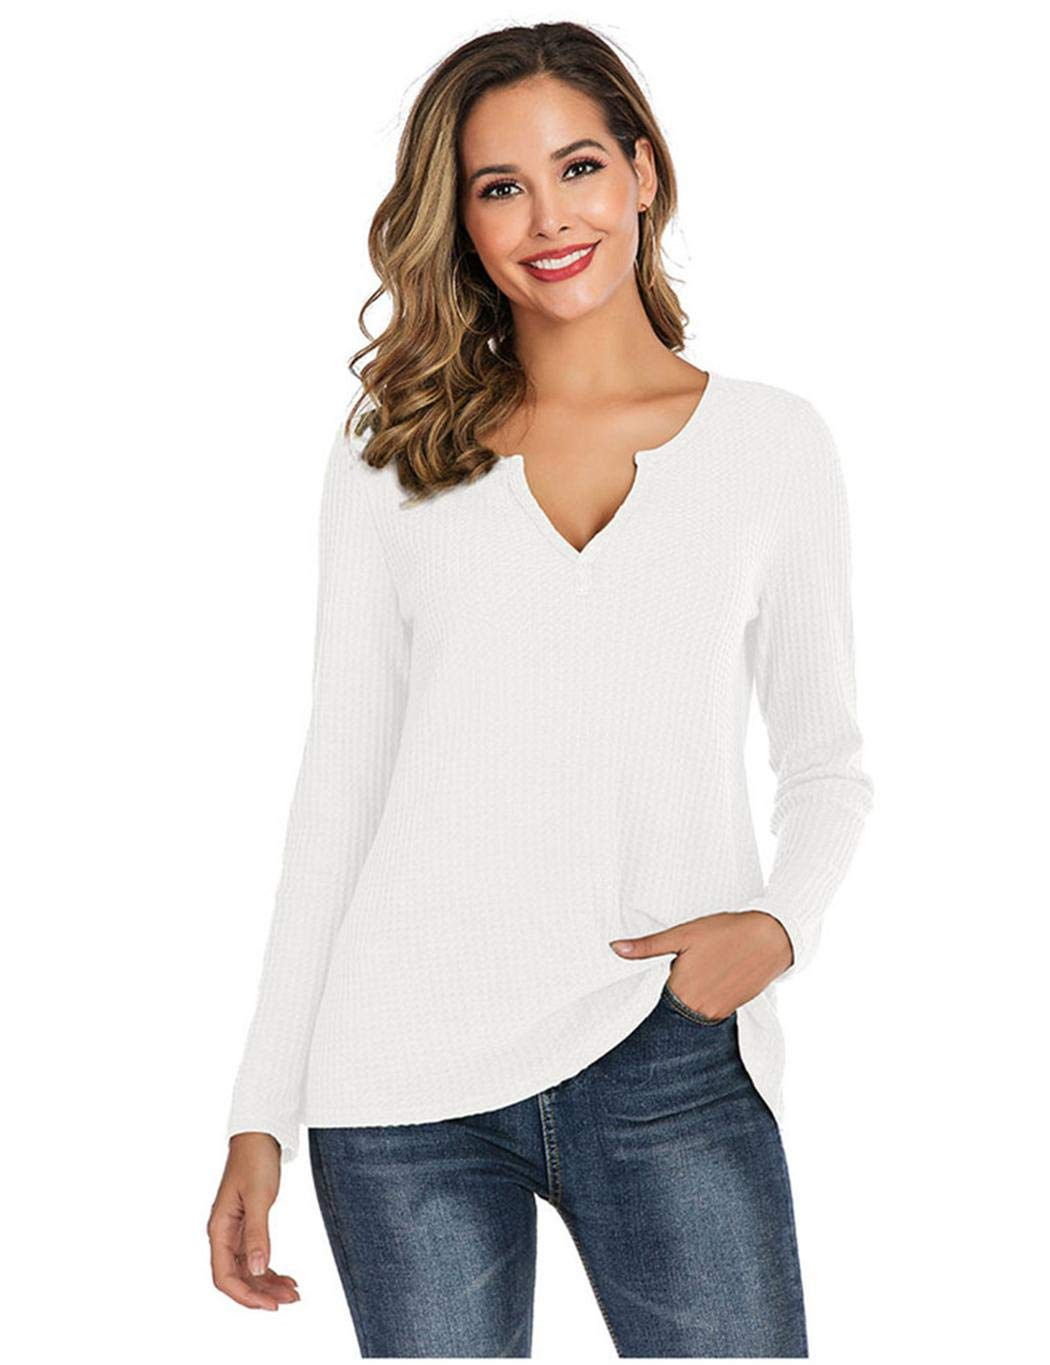 XioNiu Women Casual Long Sleeve Solid T-Shirt Autumn Winter V-Neck Loose Tops Knits & Tees White